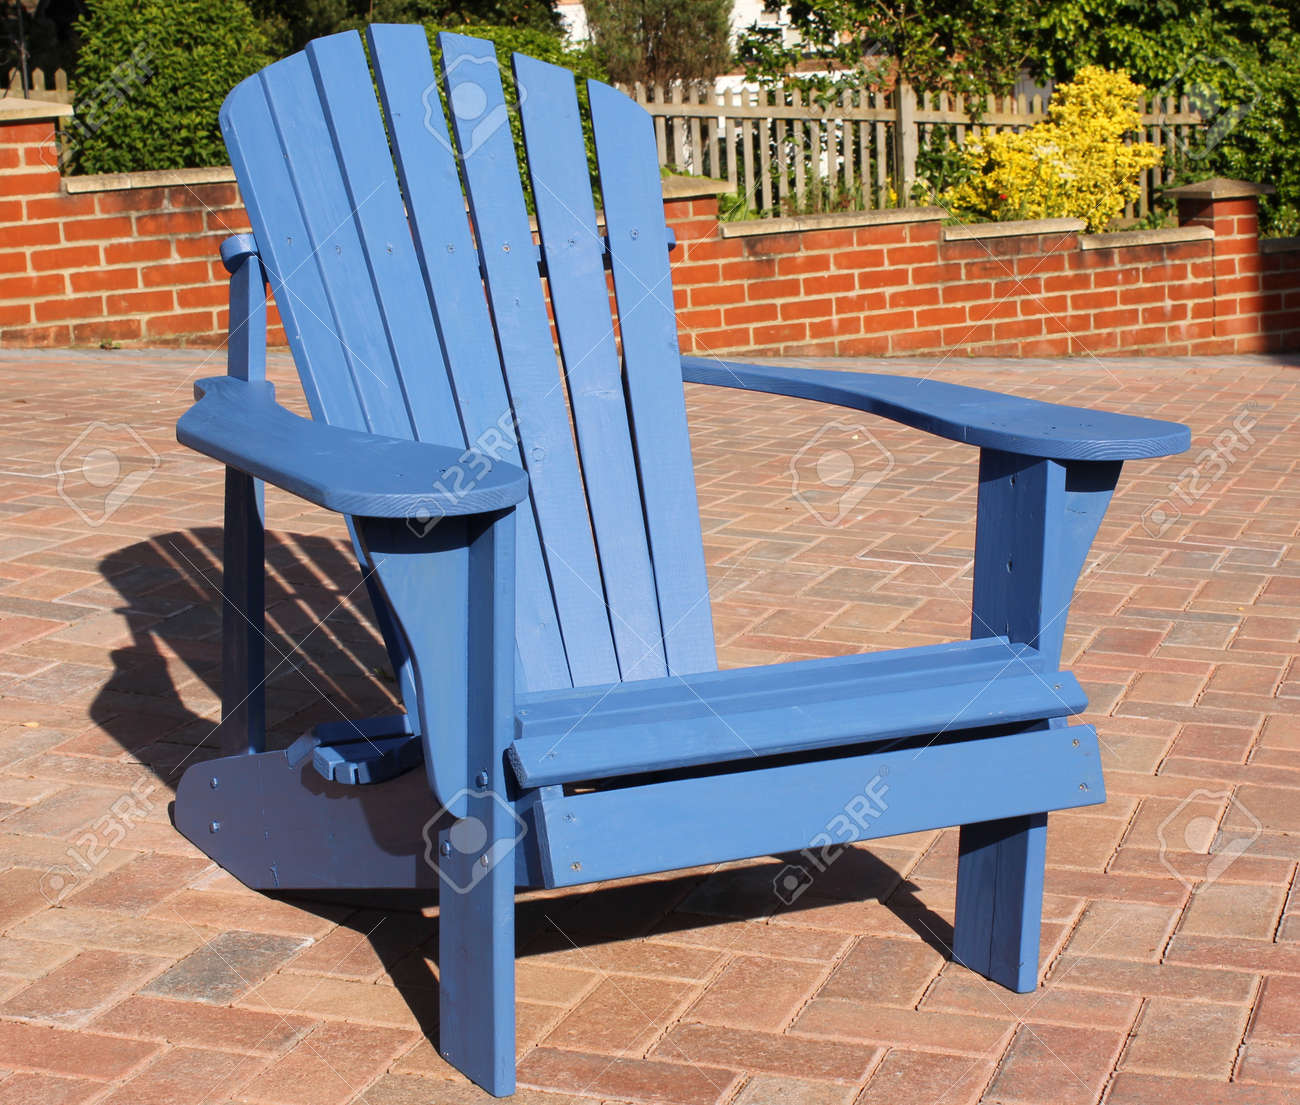 Surprising A Handmade Adirondack Style Chair Made Out Of Old Recycled Wood Unemploymentrelief Wooden Chair Designs For Living Room Unemploymentrelieforg